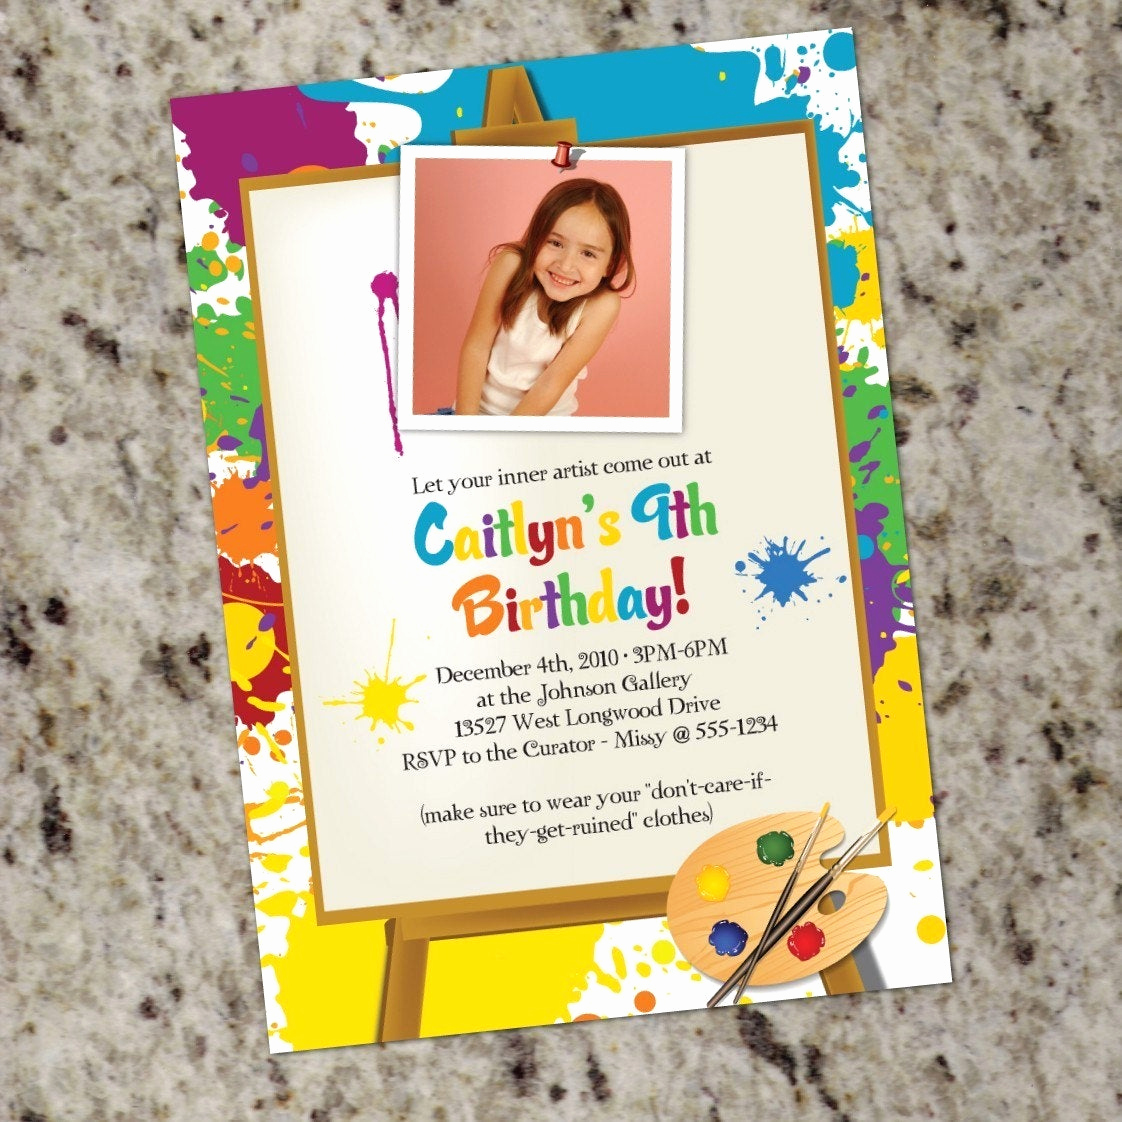 Paint Party Invitation Wording Fresh Little Artist Art Painting Birthday Party Invitations